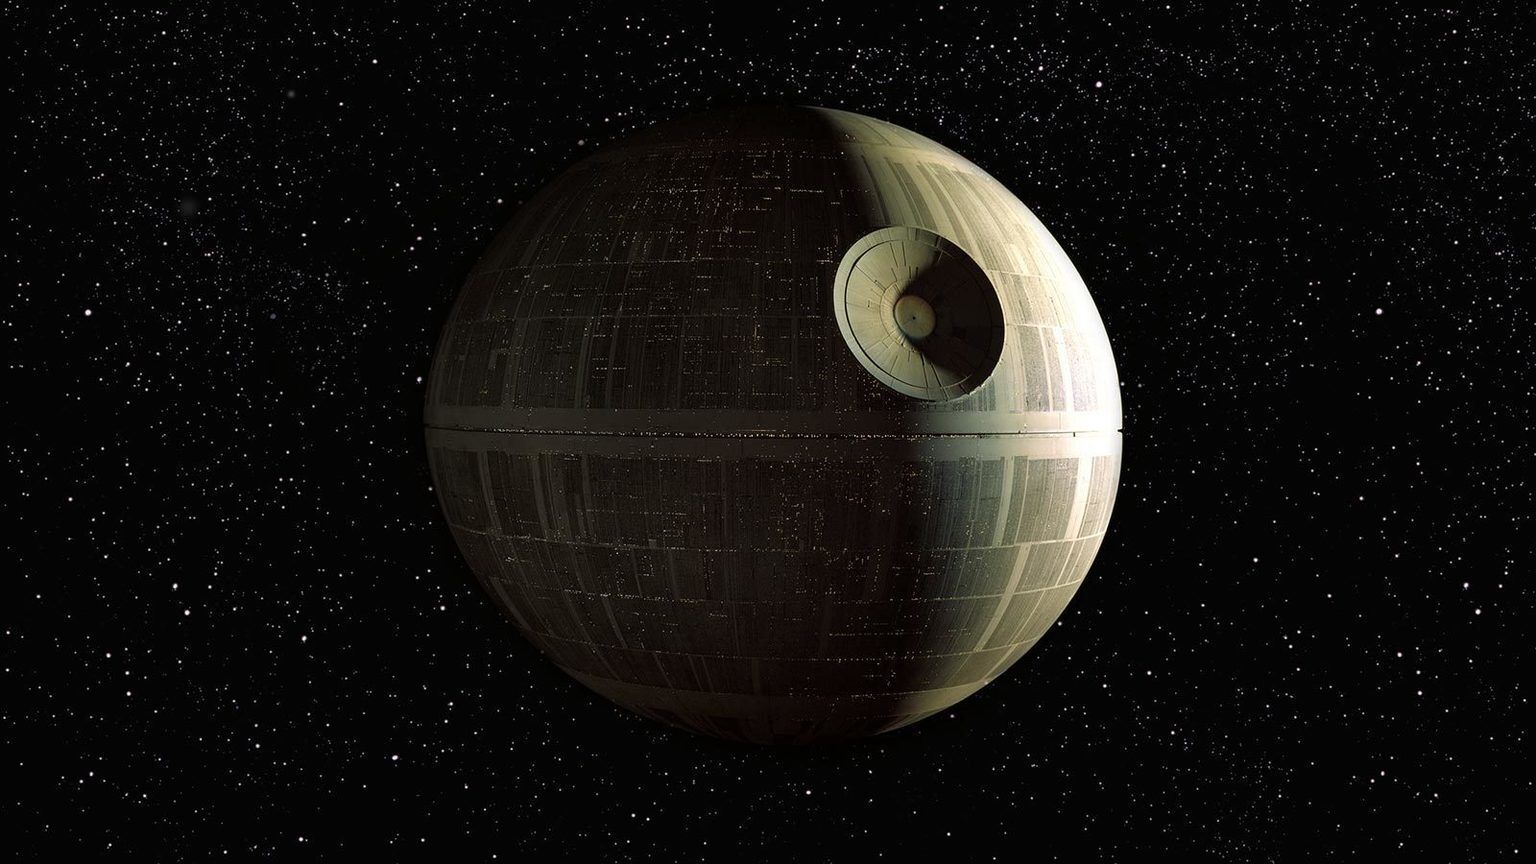 The Rise of Skywalker: Are the Death Star ruins from the first or second one?